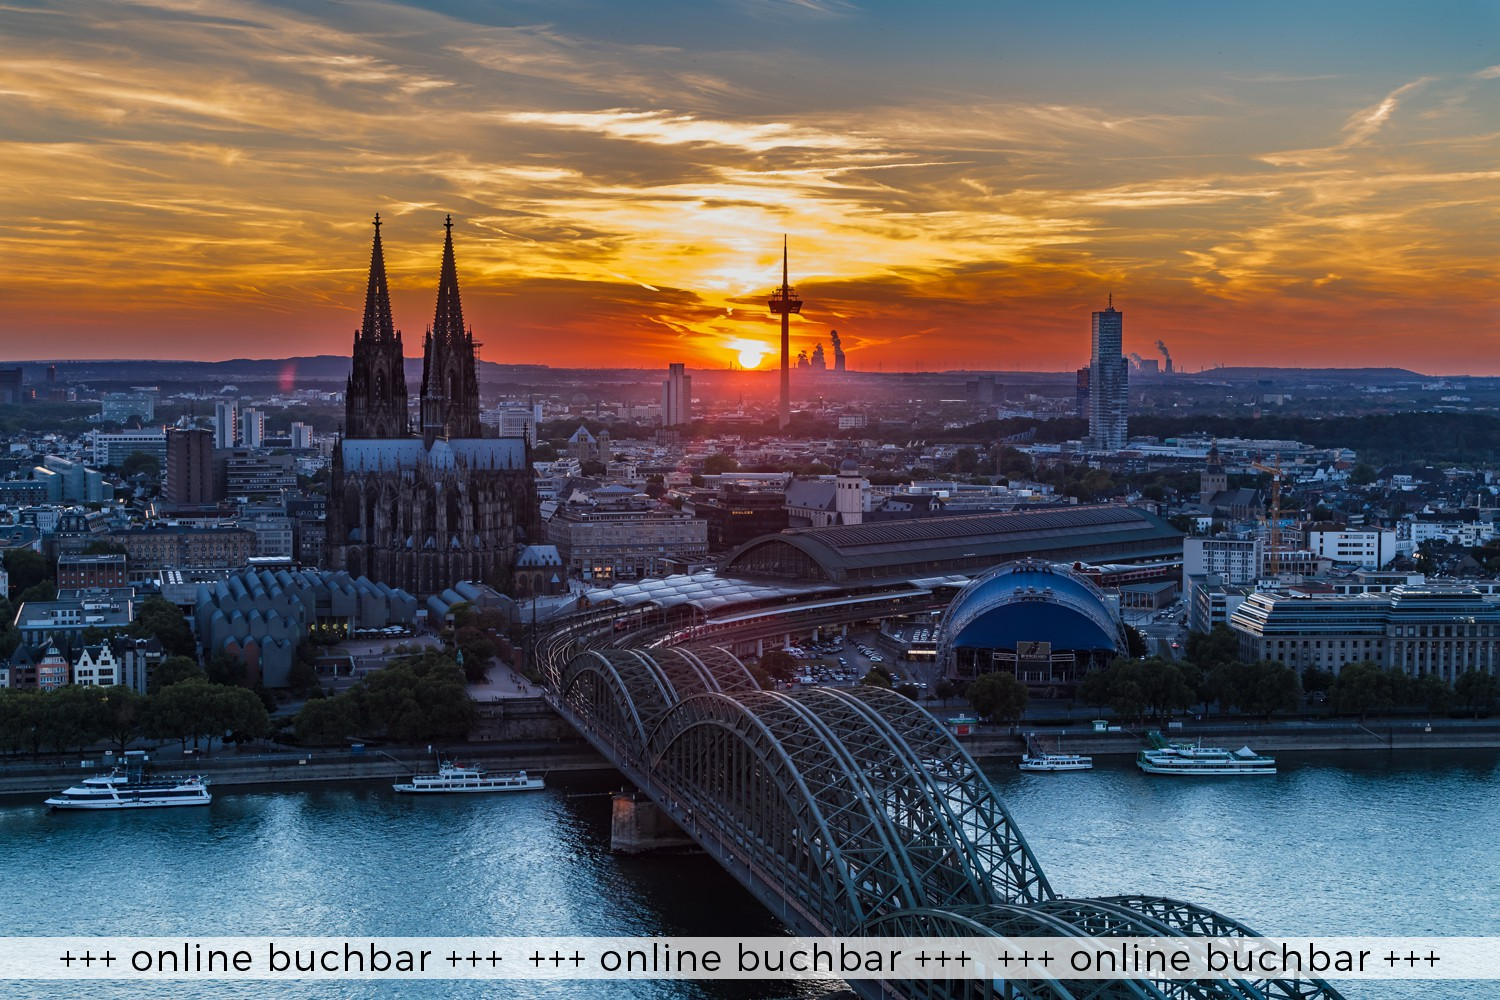 Enjoy a 3 days holiday at the 4* H+ Hotel Köln Hürth in the cathedral city Cologne